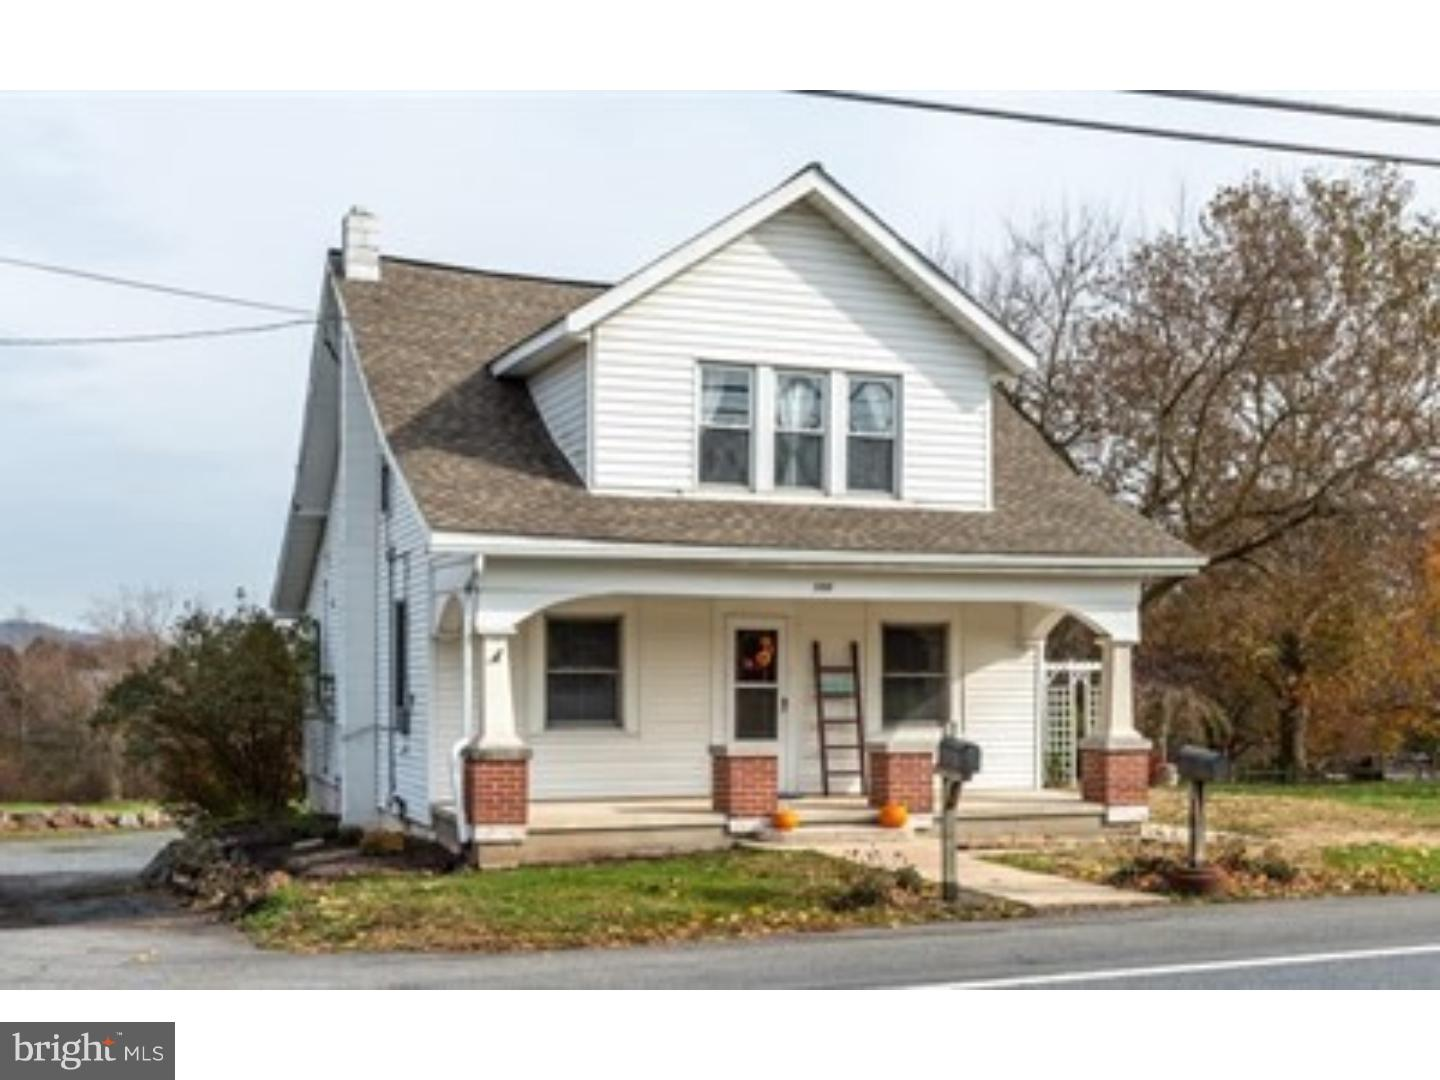 330 W ROUTE 897, REINHOLDS, PA 17569